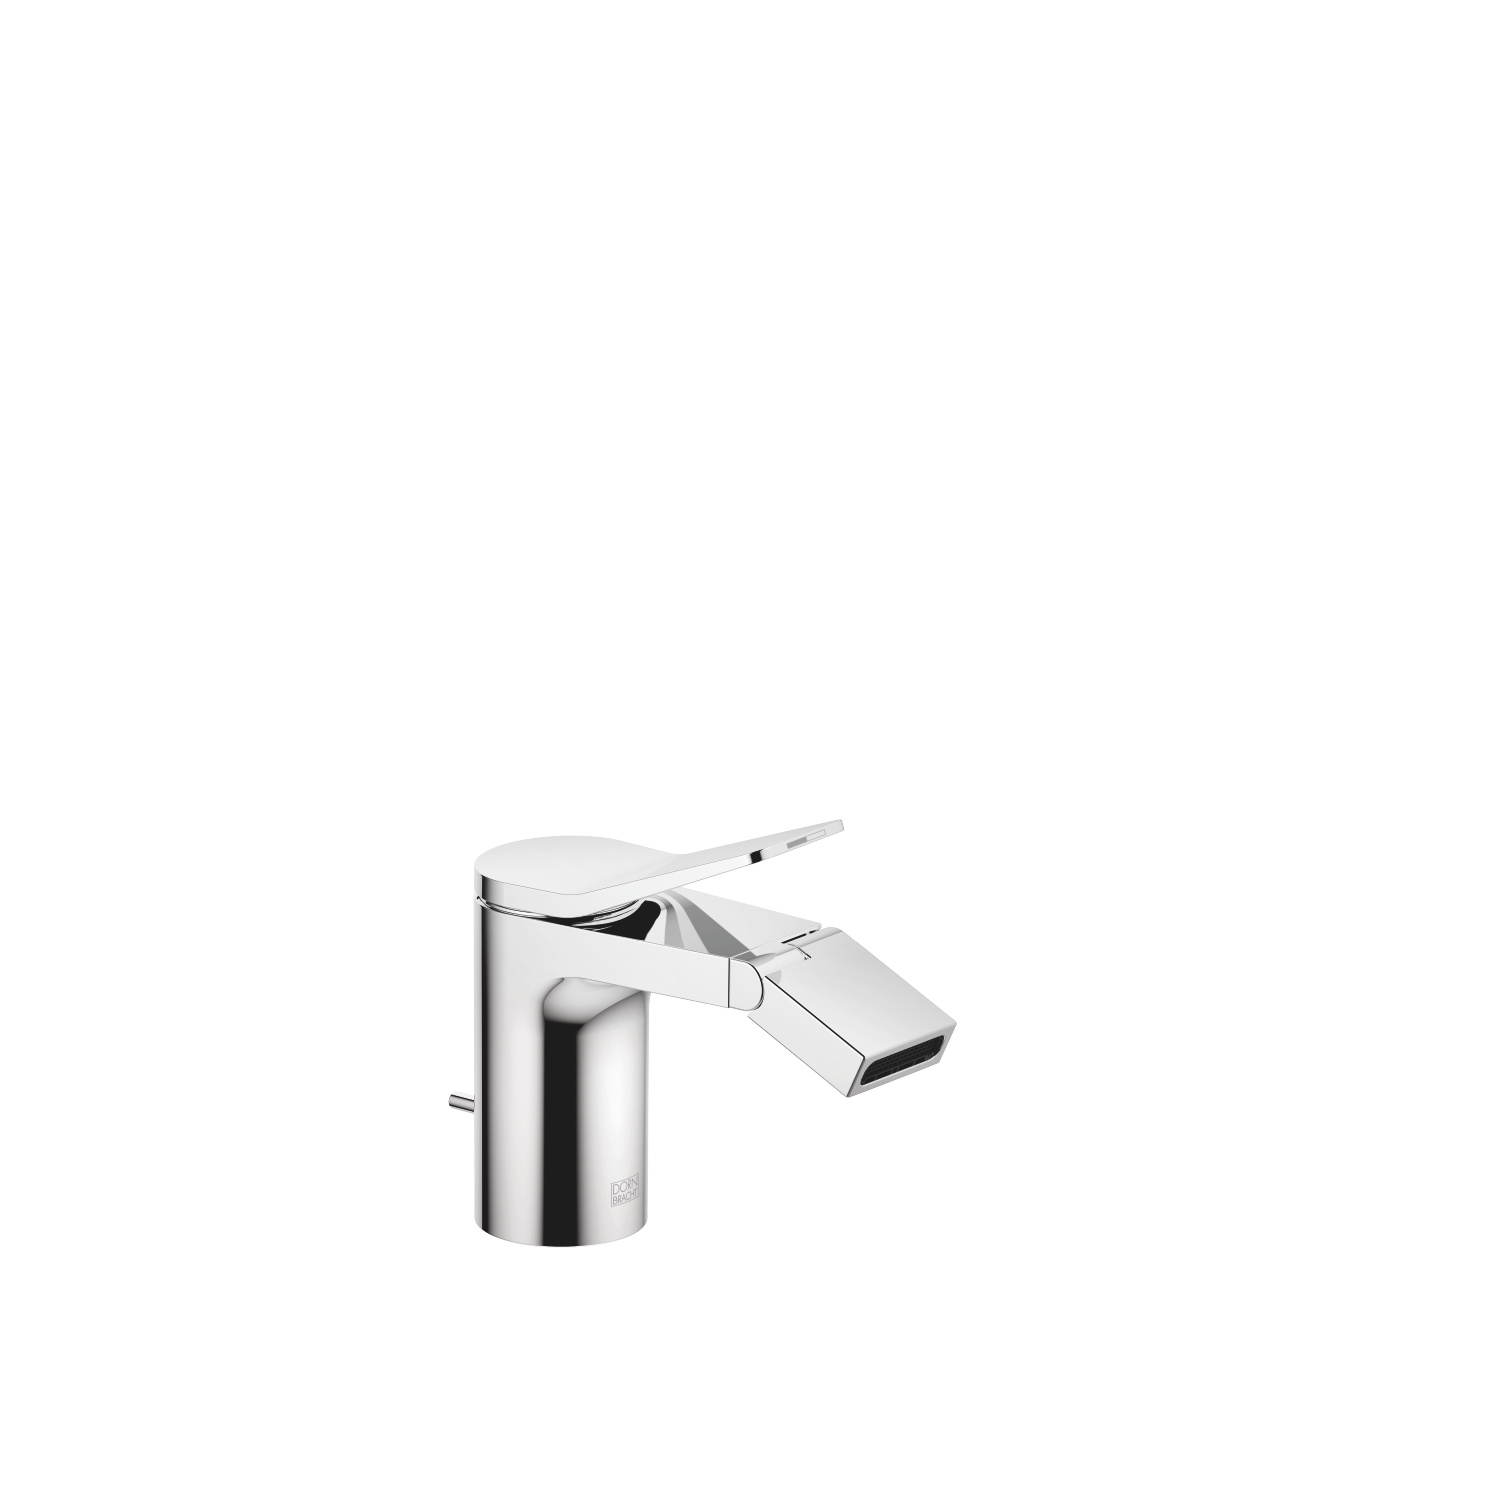 Single-lever bidet mixer with pop-up waste - polished chrome - 33 600 845-00